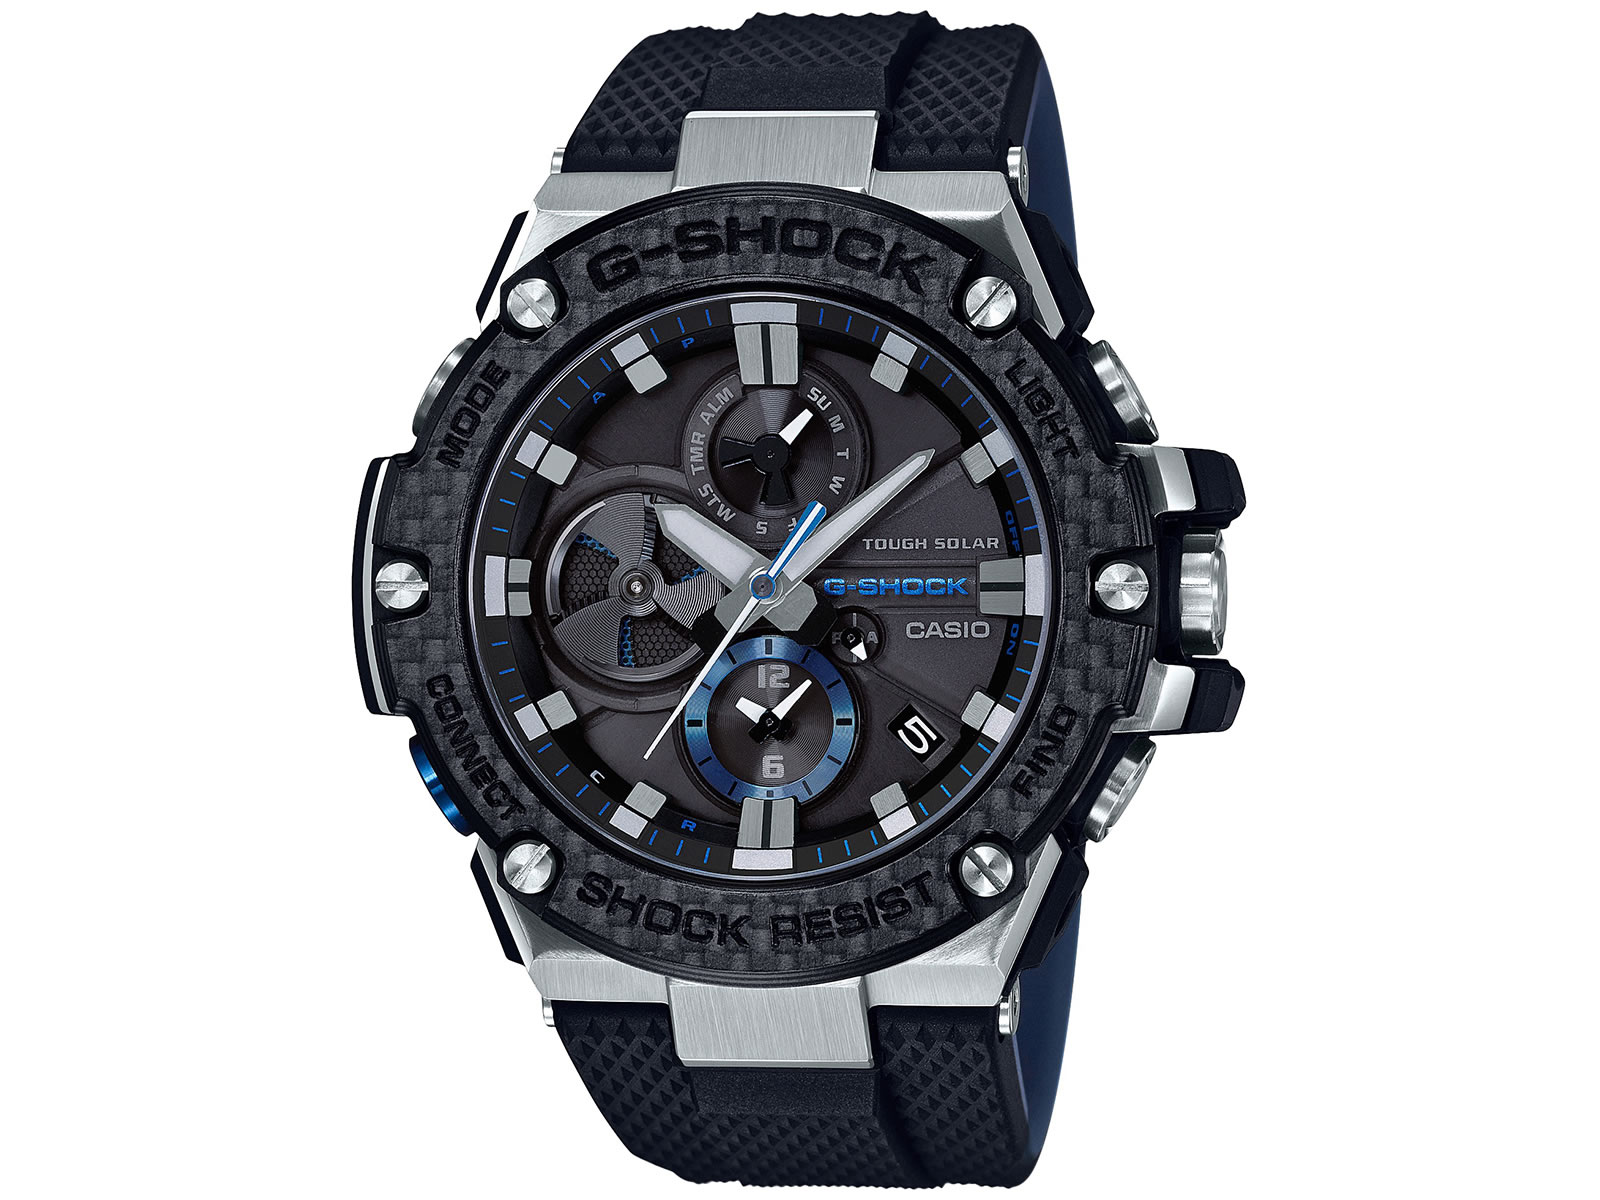 gstb100xa-1a-casio-g-shock-g-steel-chrono-solar-carbon-edition-2-.jpg